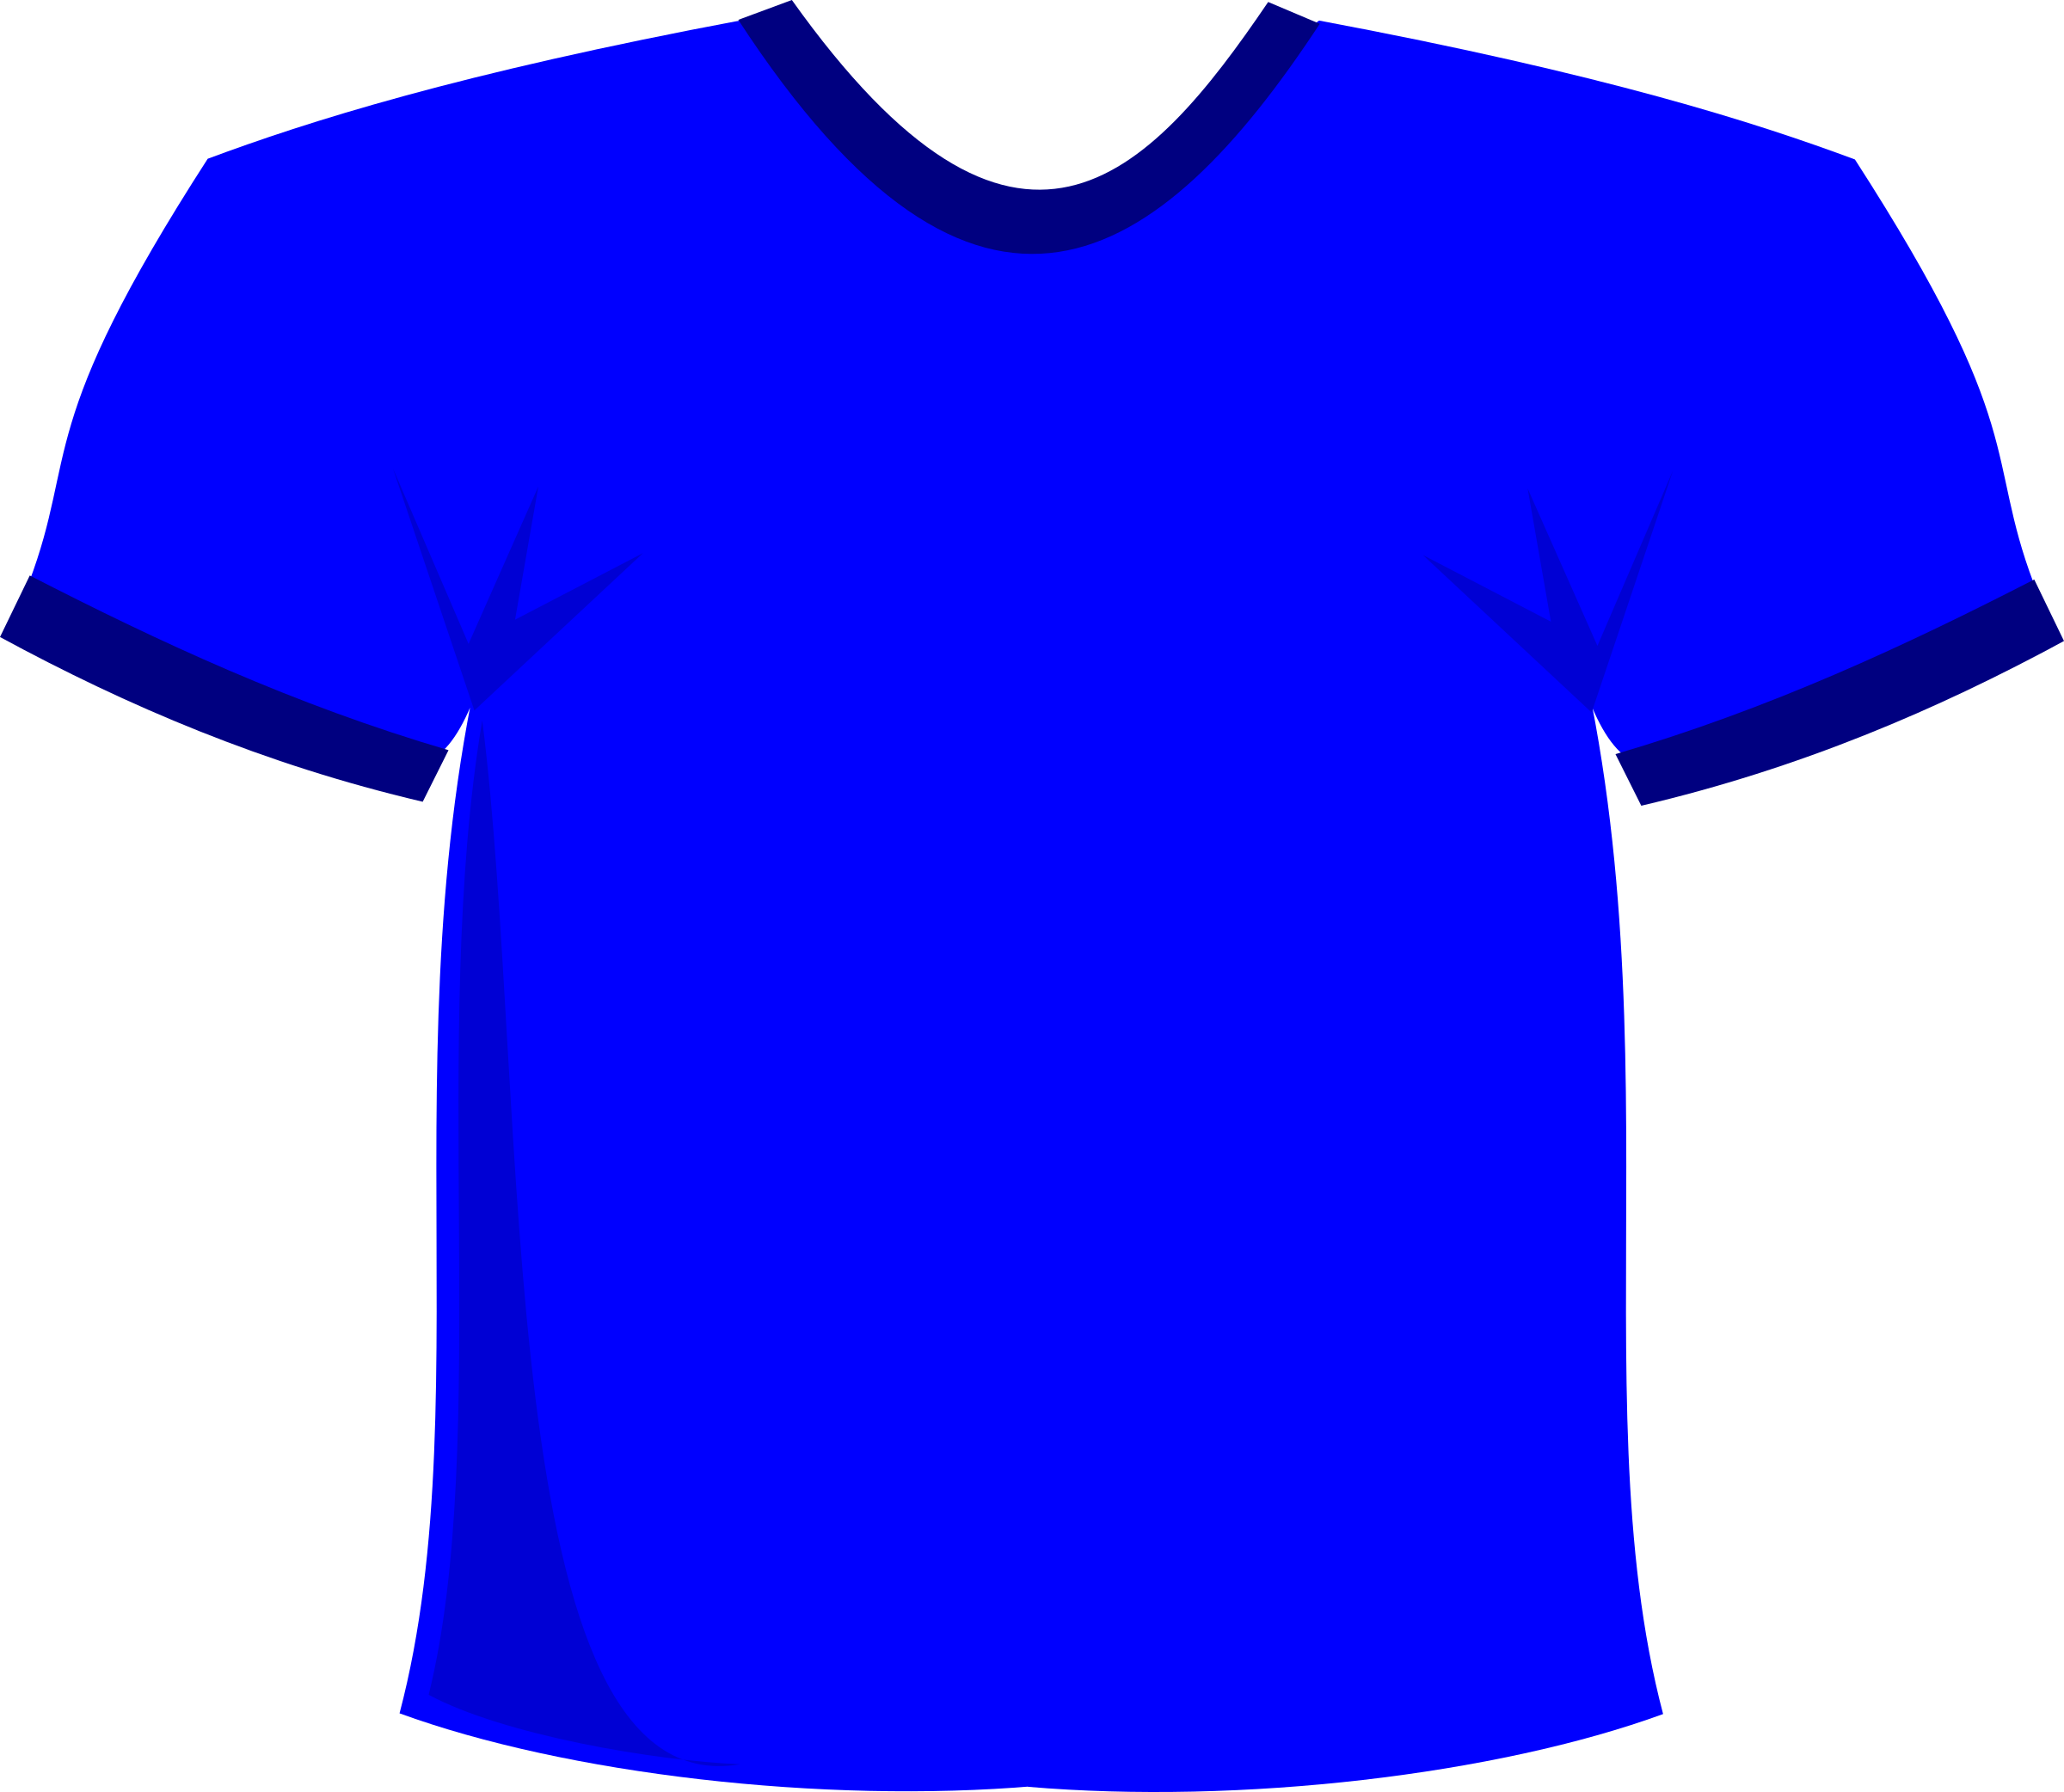 Clipart shirt jeans. Custom t shirts blue